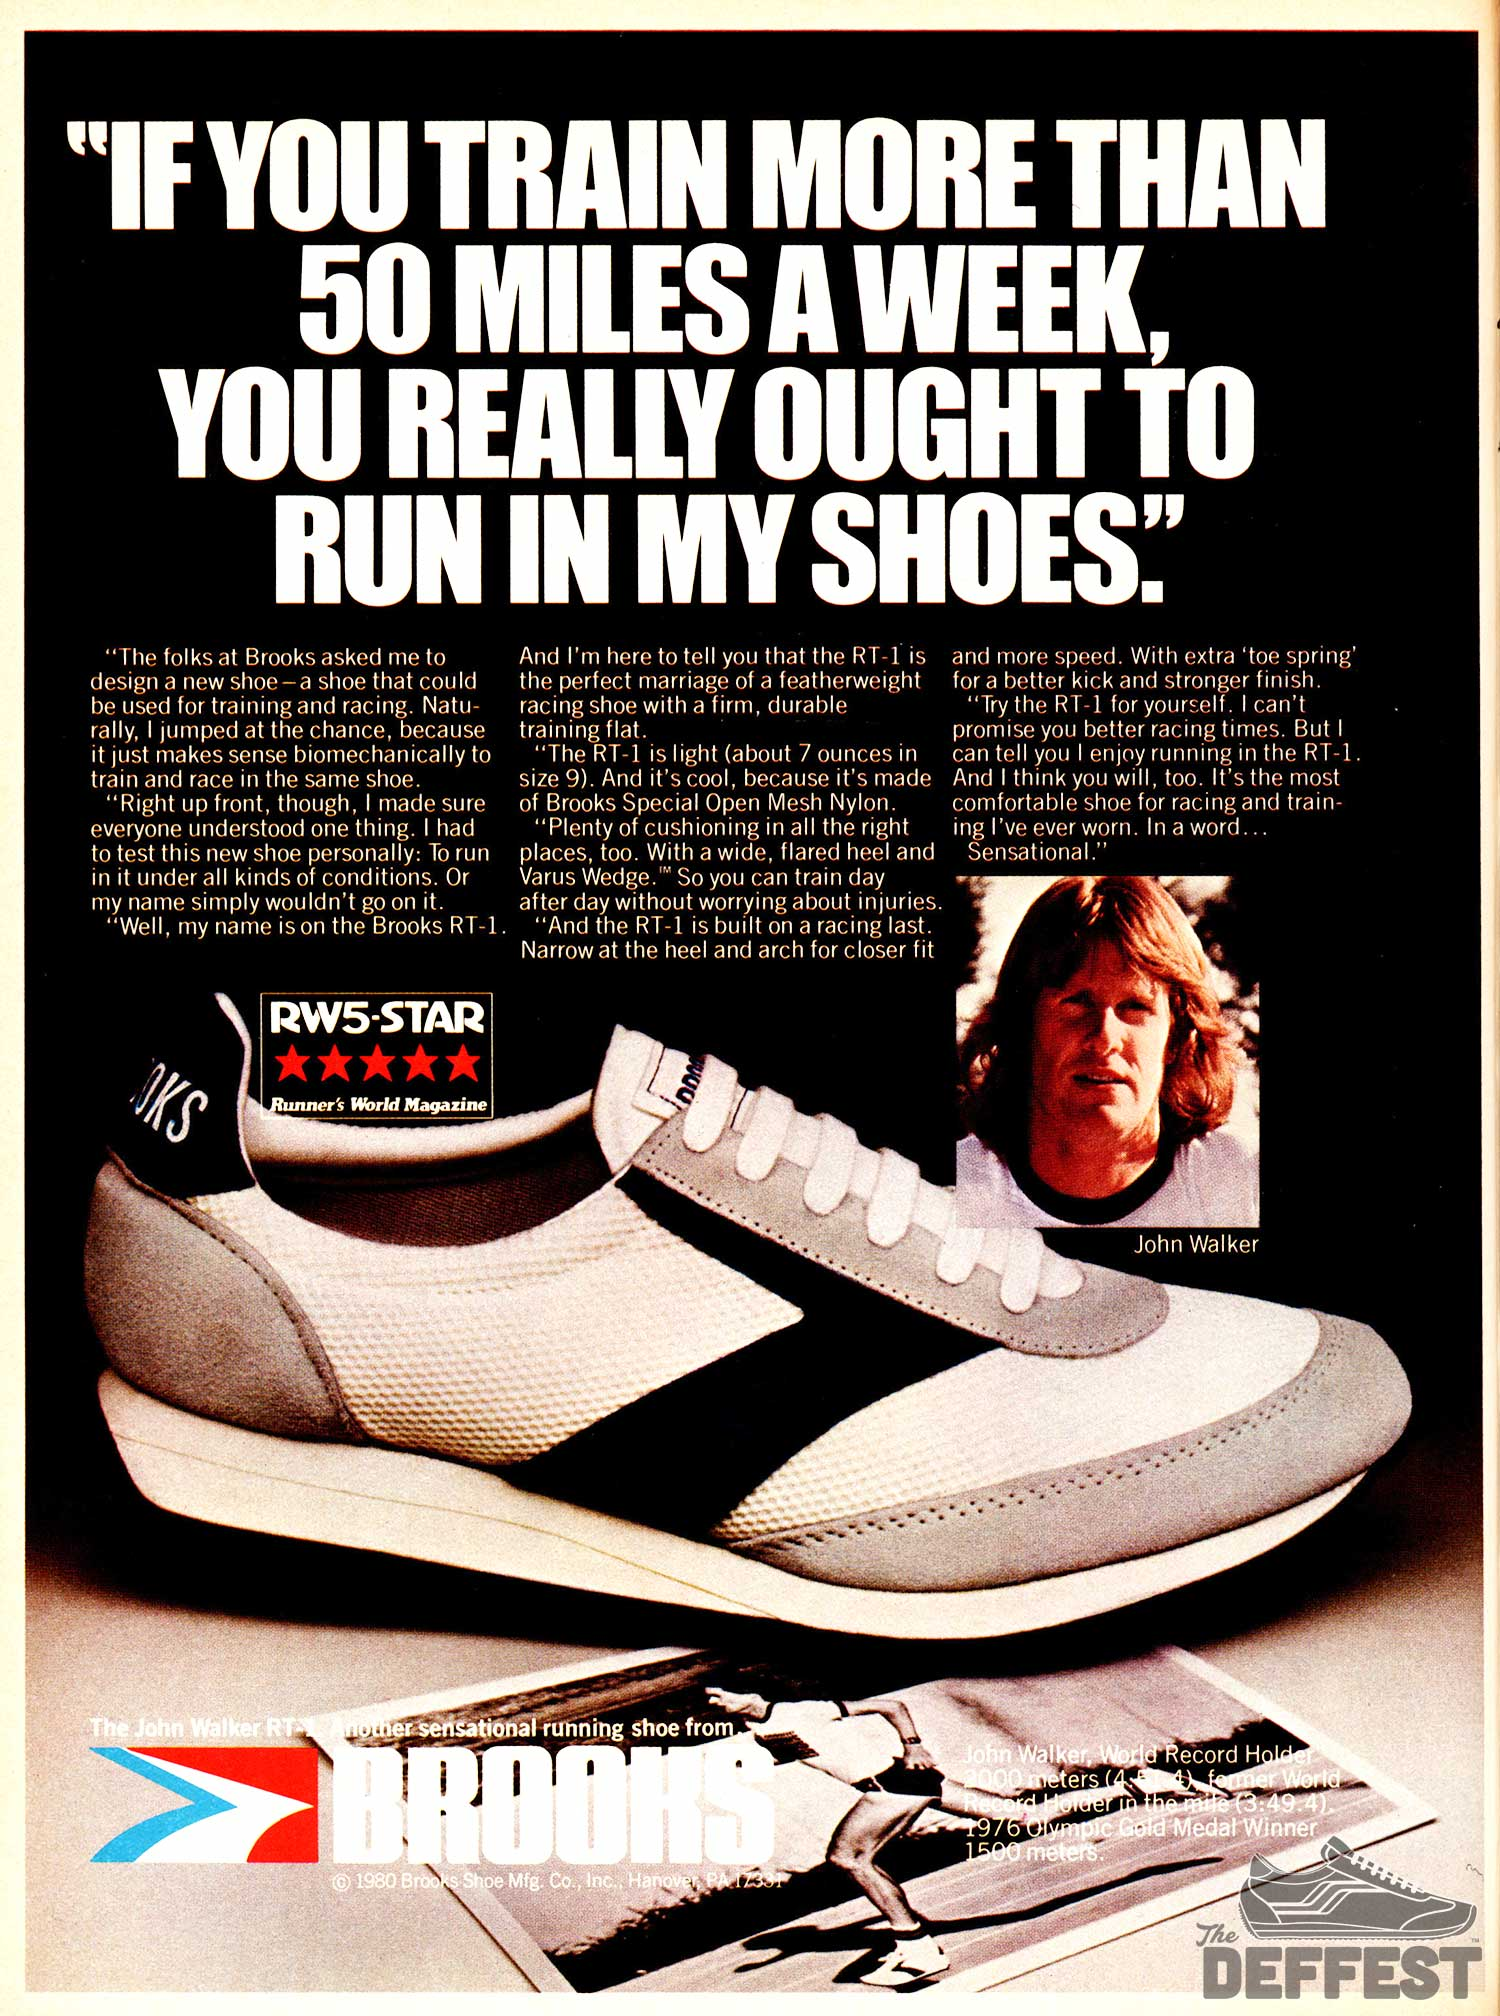 Brooks Rt 1 The Deffest A Vintage And Retro Sneaker Blog Vintage Ads